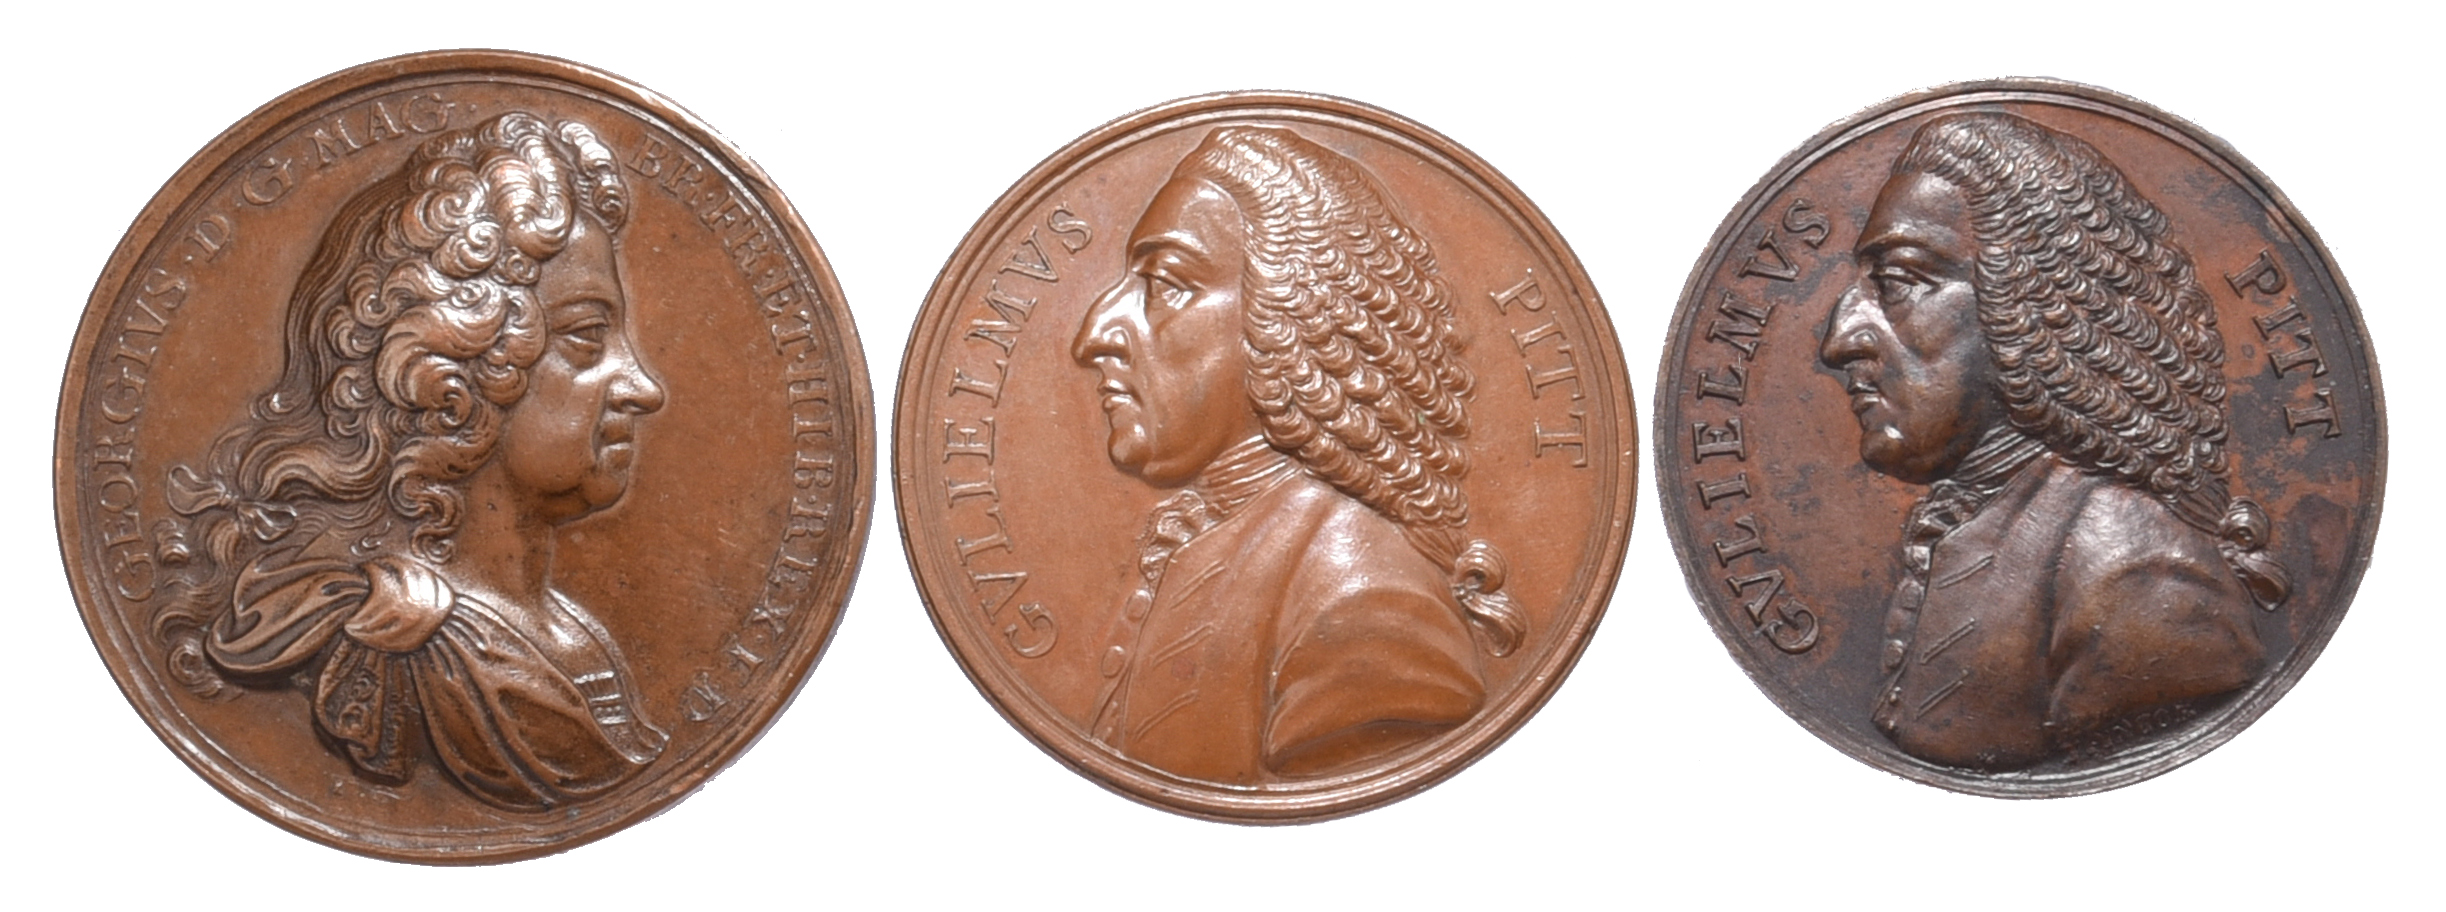 Great Britain: political commemorative medals (3): Act of Grace and Free Pardon 1717, AE, 45 mm,